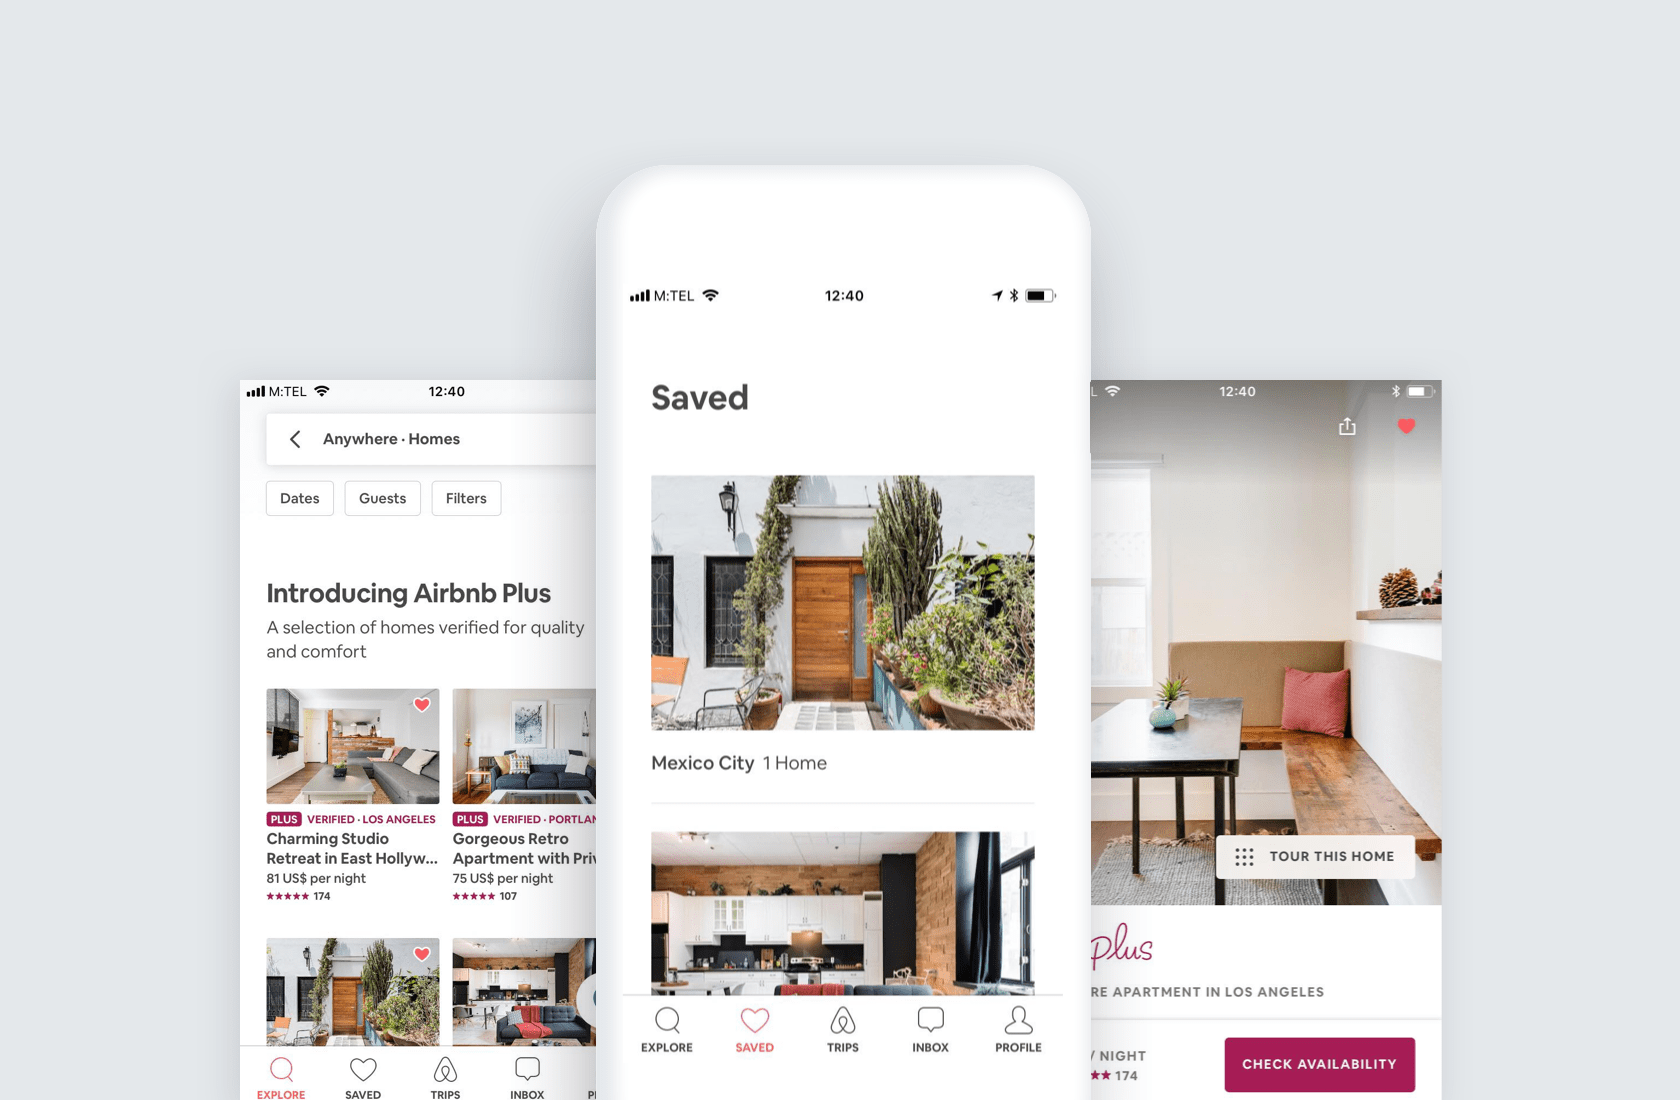 Airbnb's scannable content based on user research